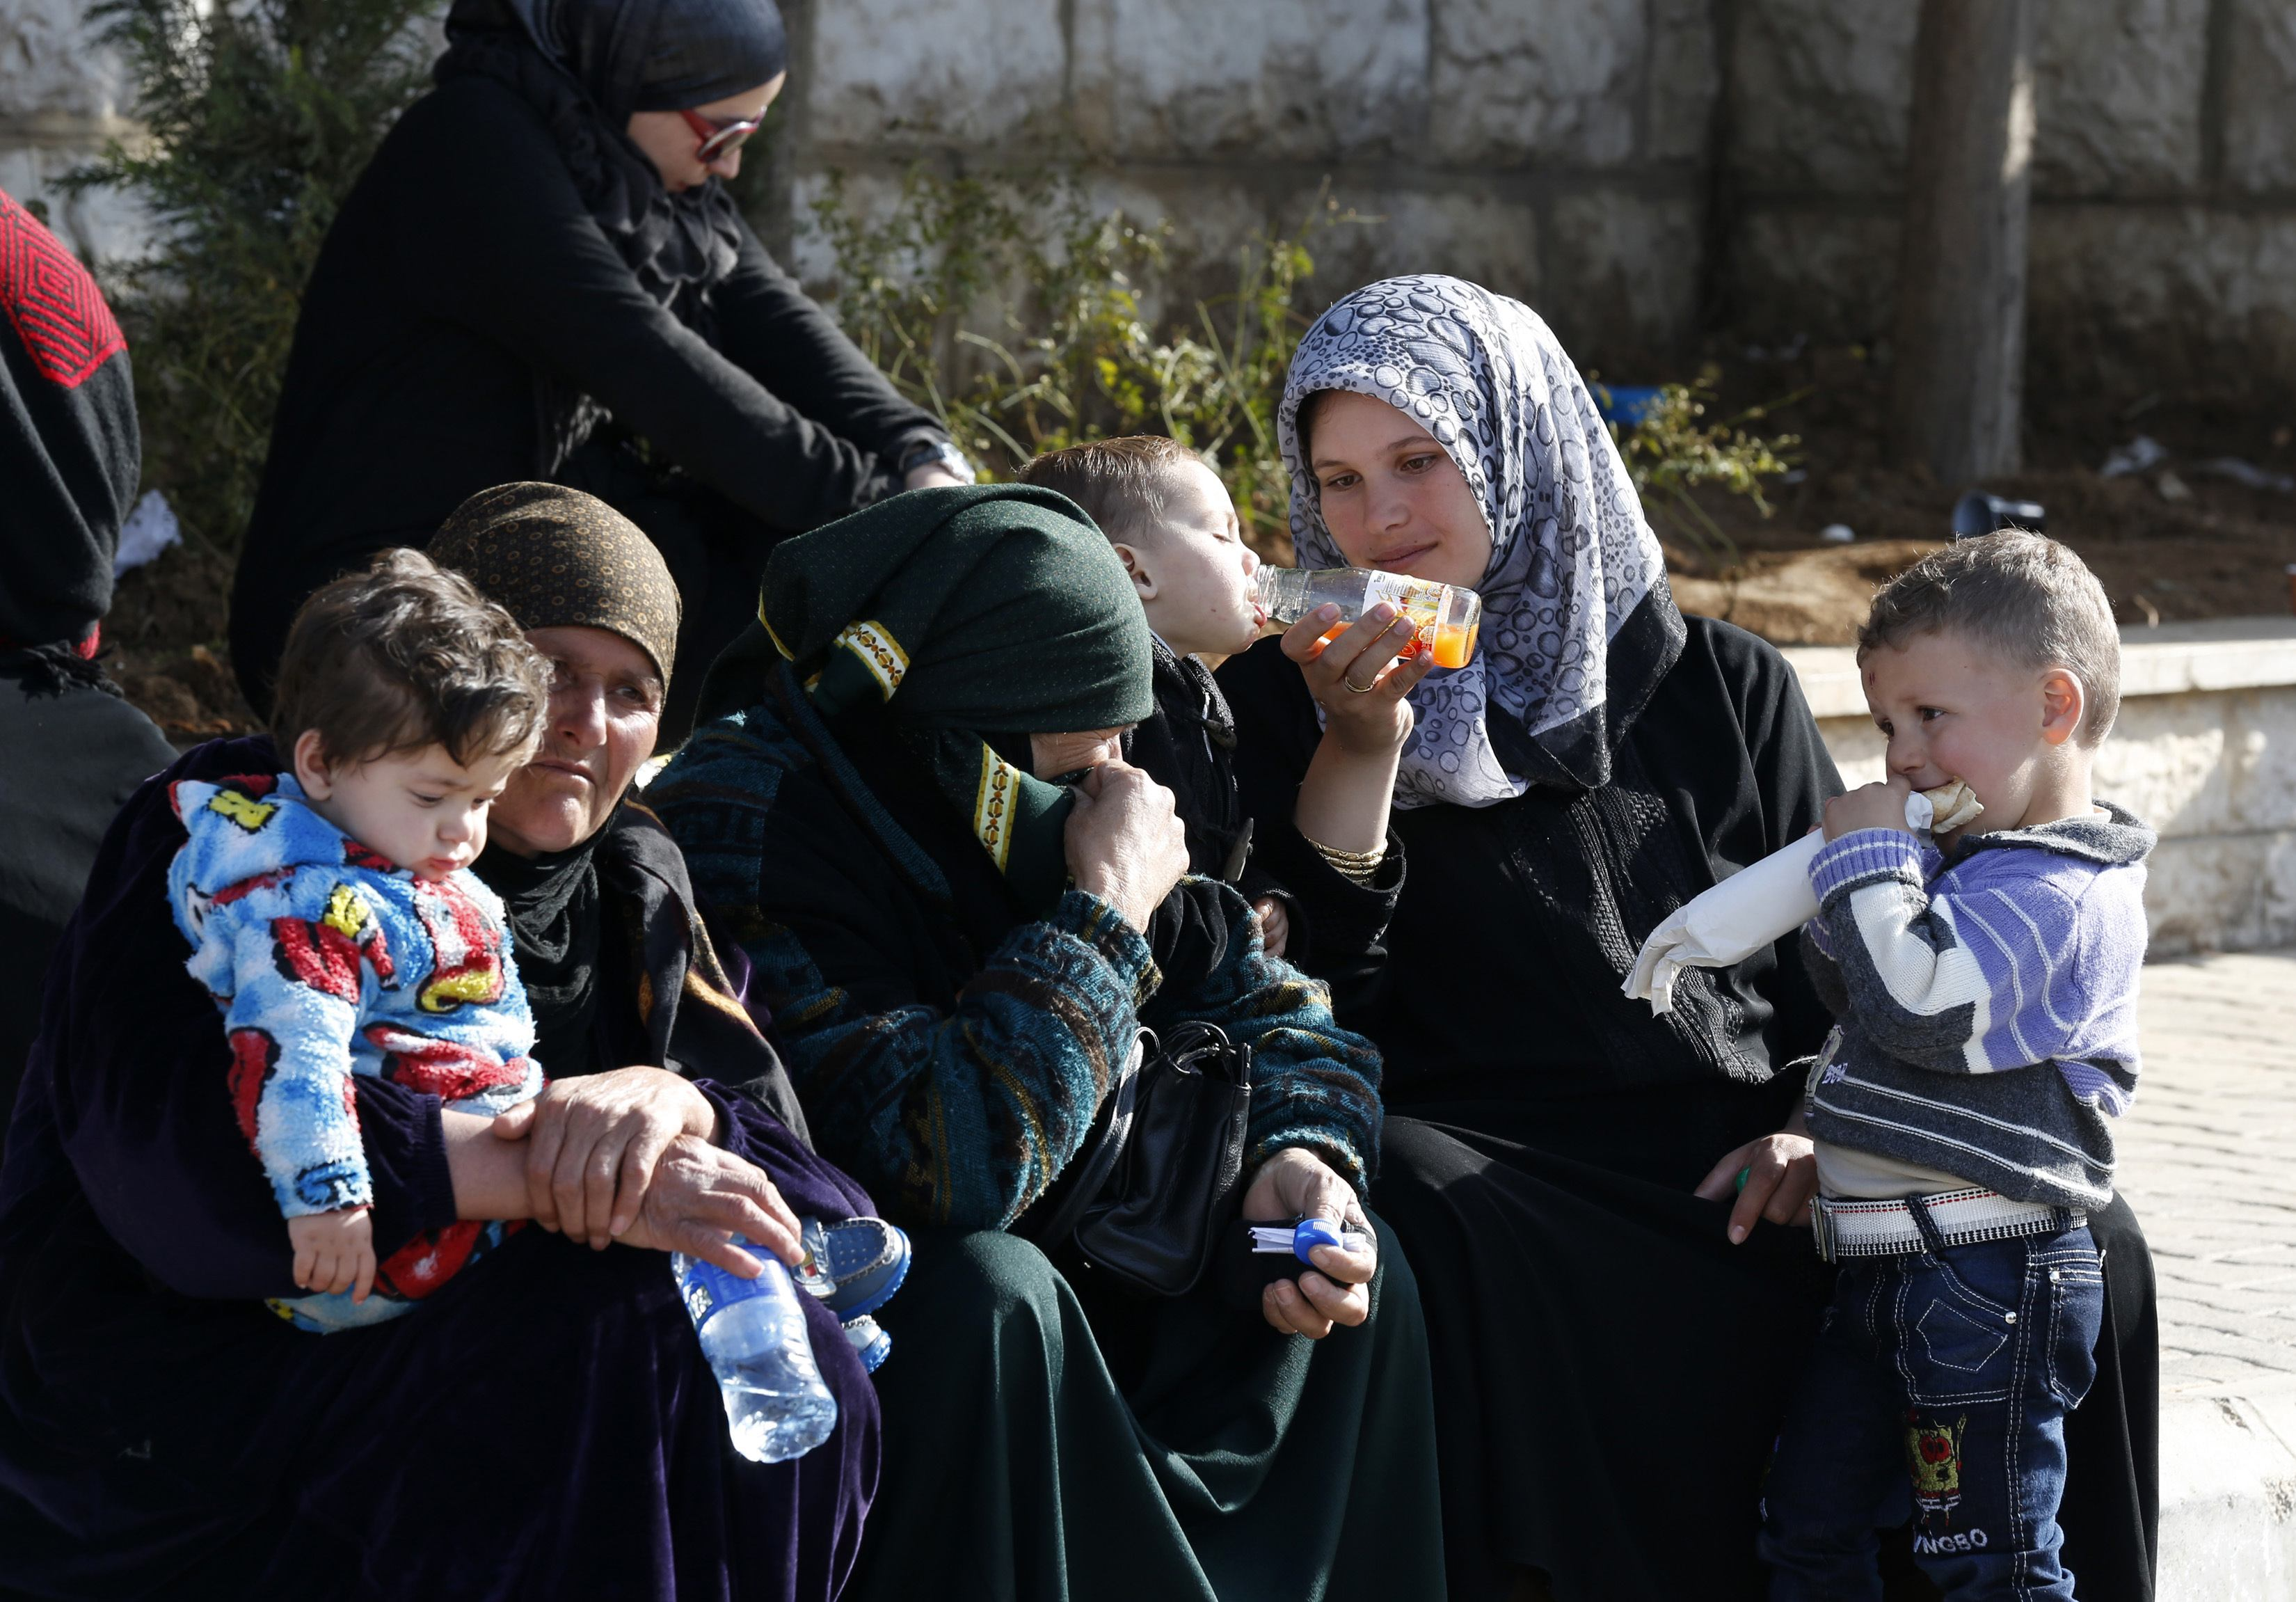 Syria women and children wait to get a visa stamp to enter Lebanon. Credit: Jamal Saidi/ Reuters